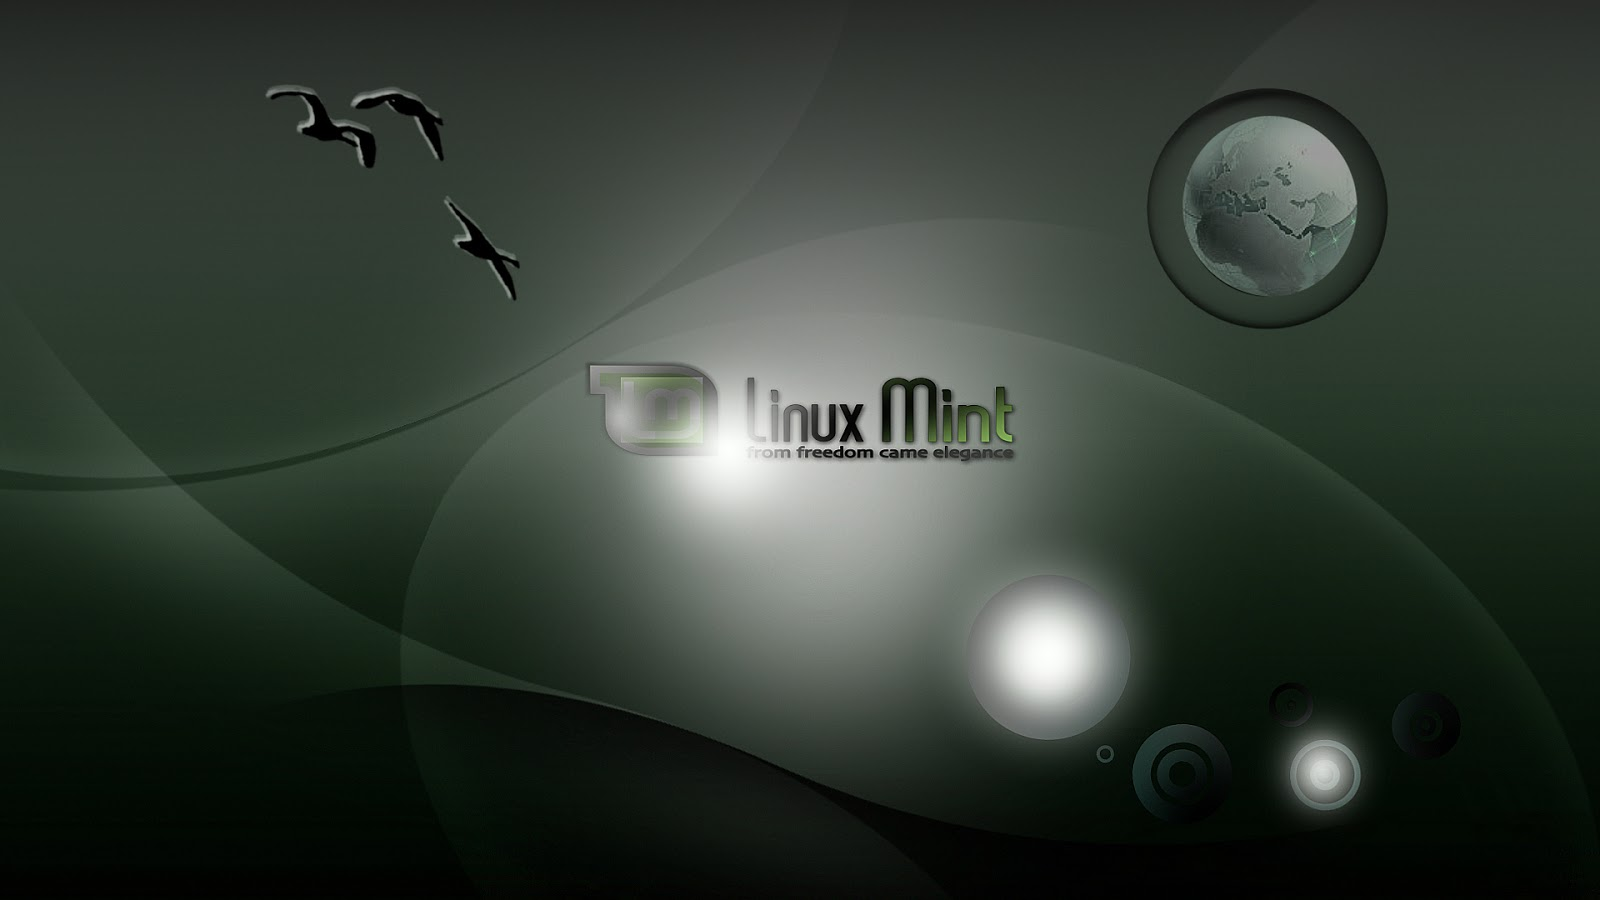 Get The Latest Linux Mint Wallpapers By Sakasa 1920x1080 Graphics 1600x900